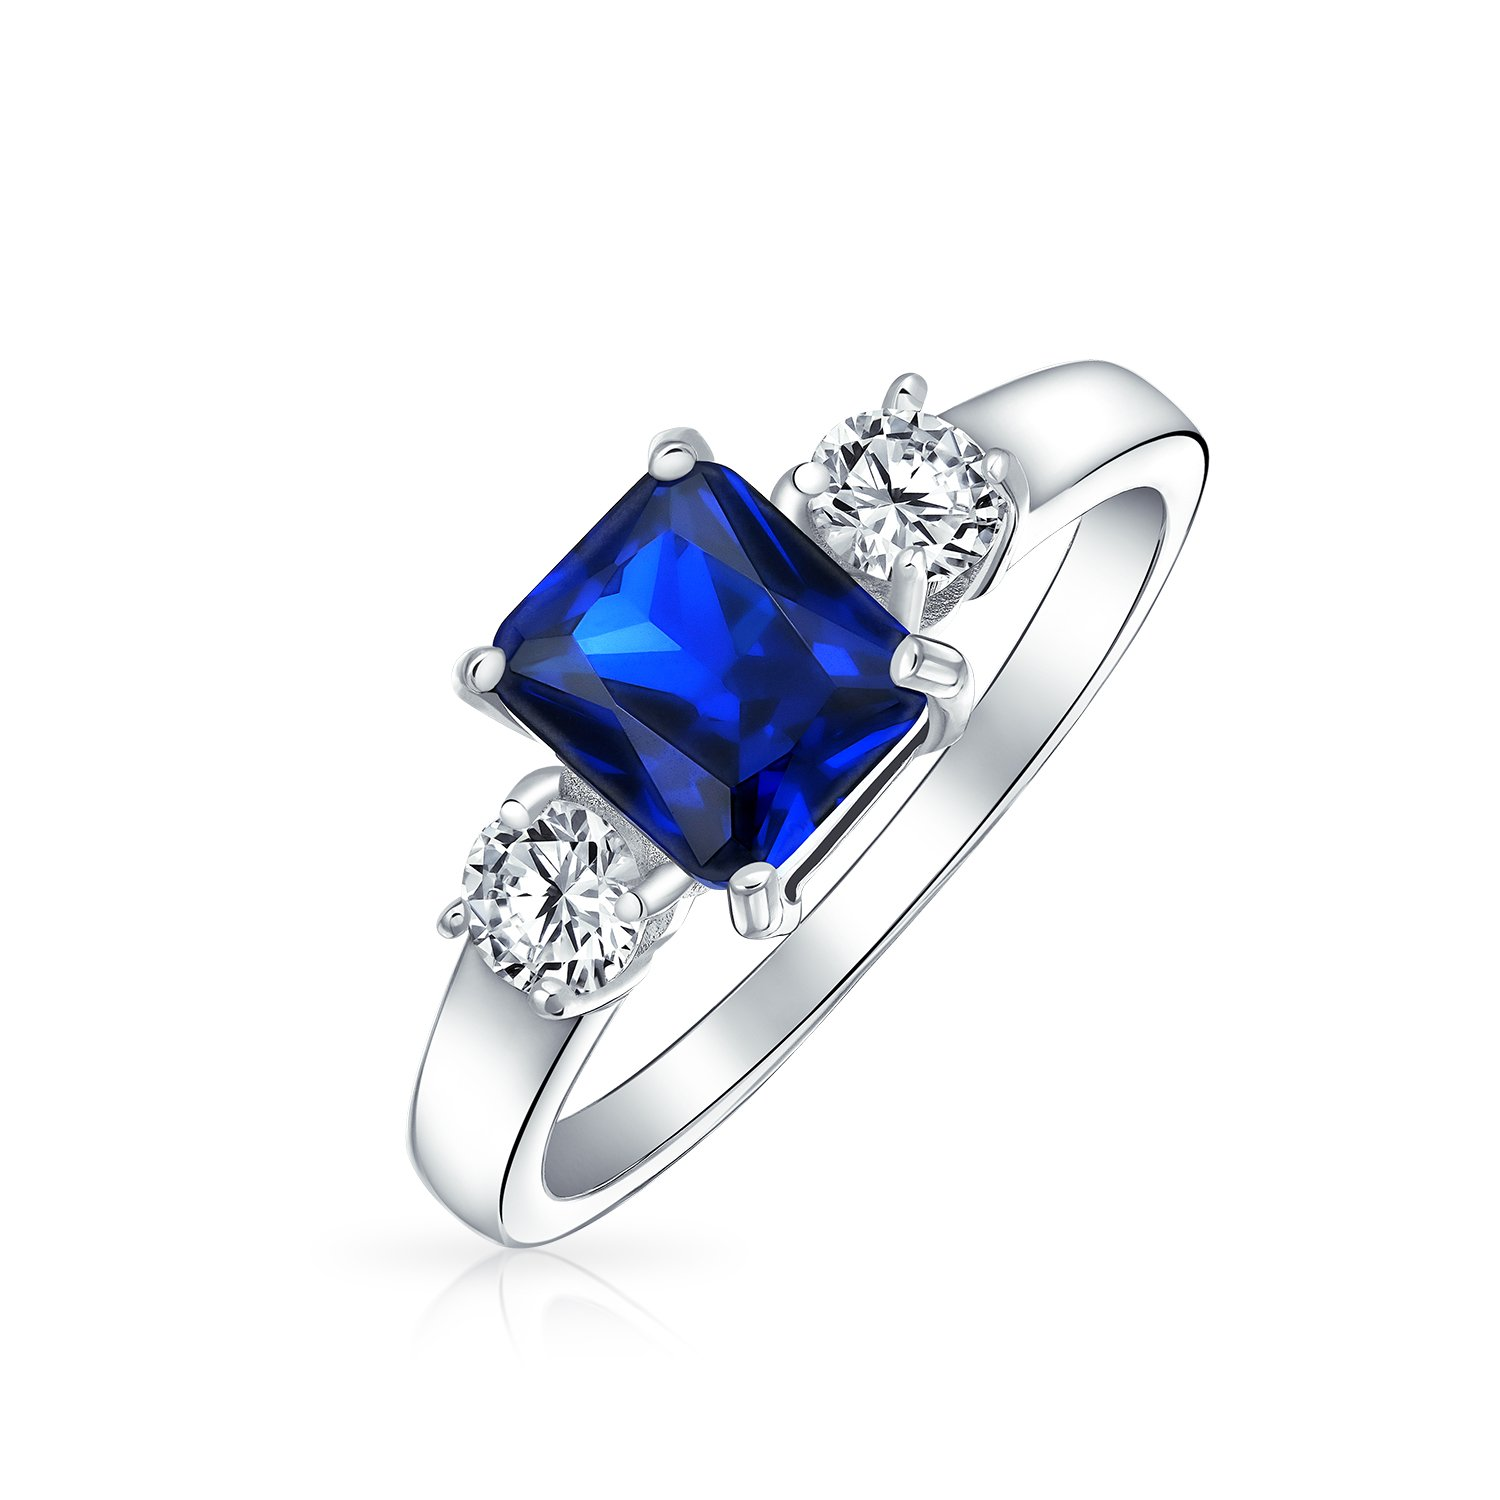 3907539d52bc8 2 CT Rectangle Blue Emerald Cut 3 Stone Past Present Future Simulated  Sapphire CZ Engagement Ring 925 Sterling Silver